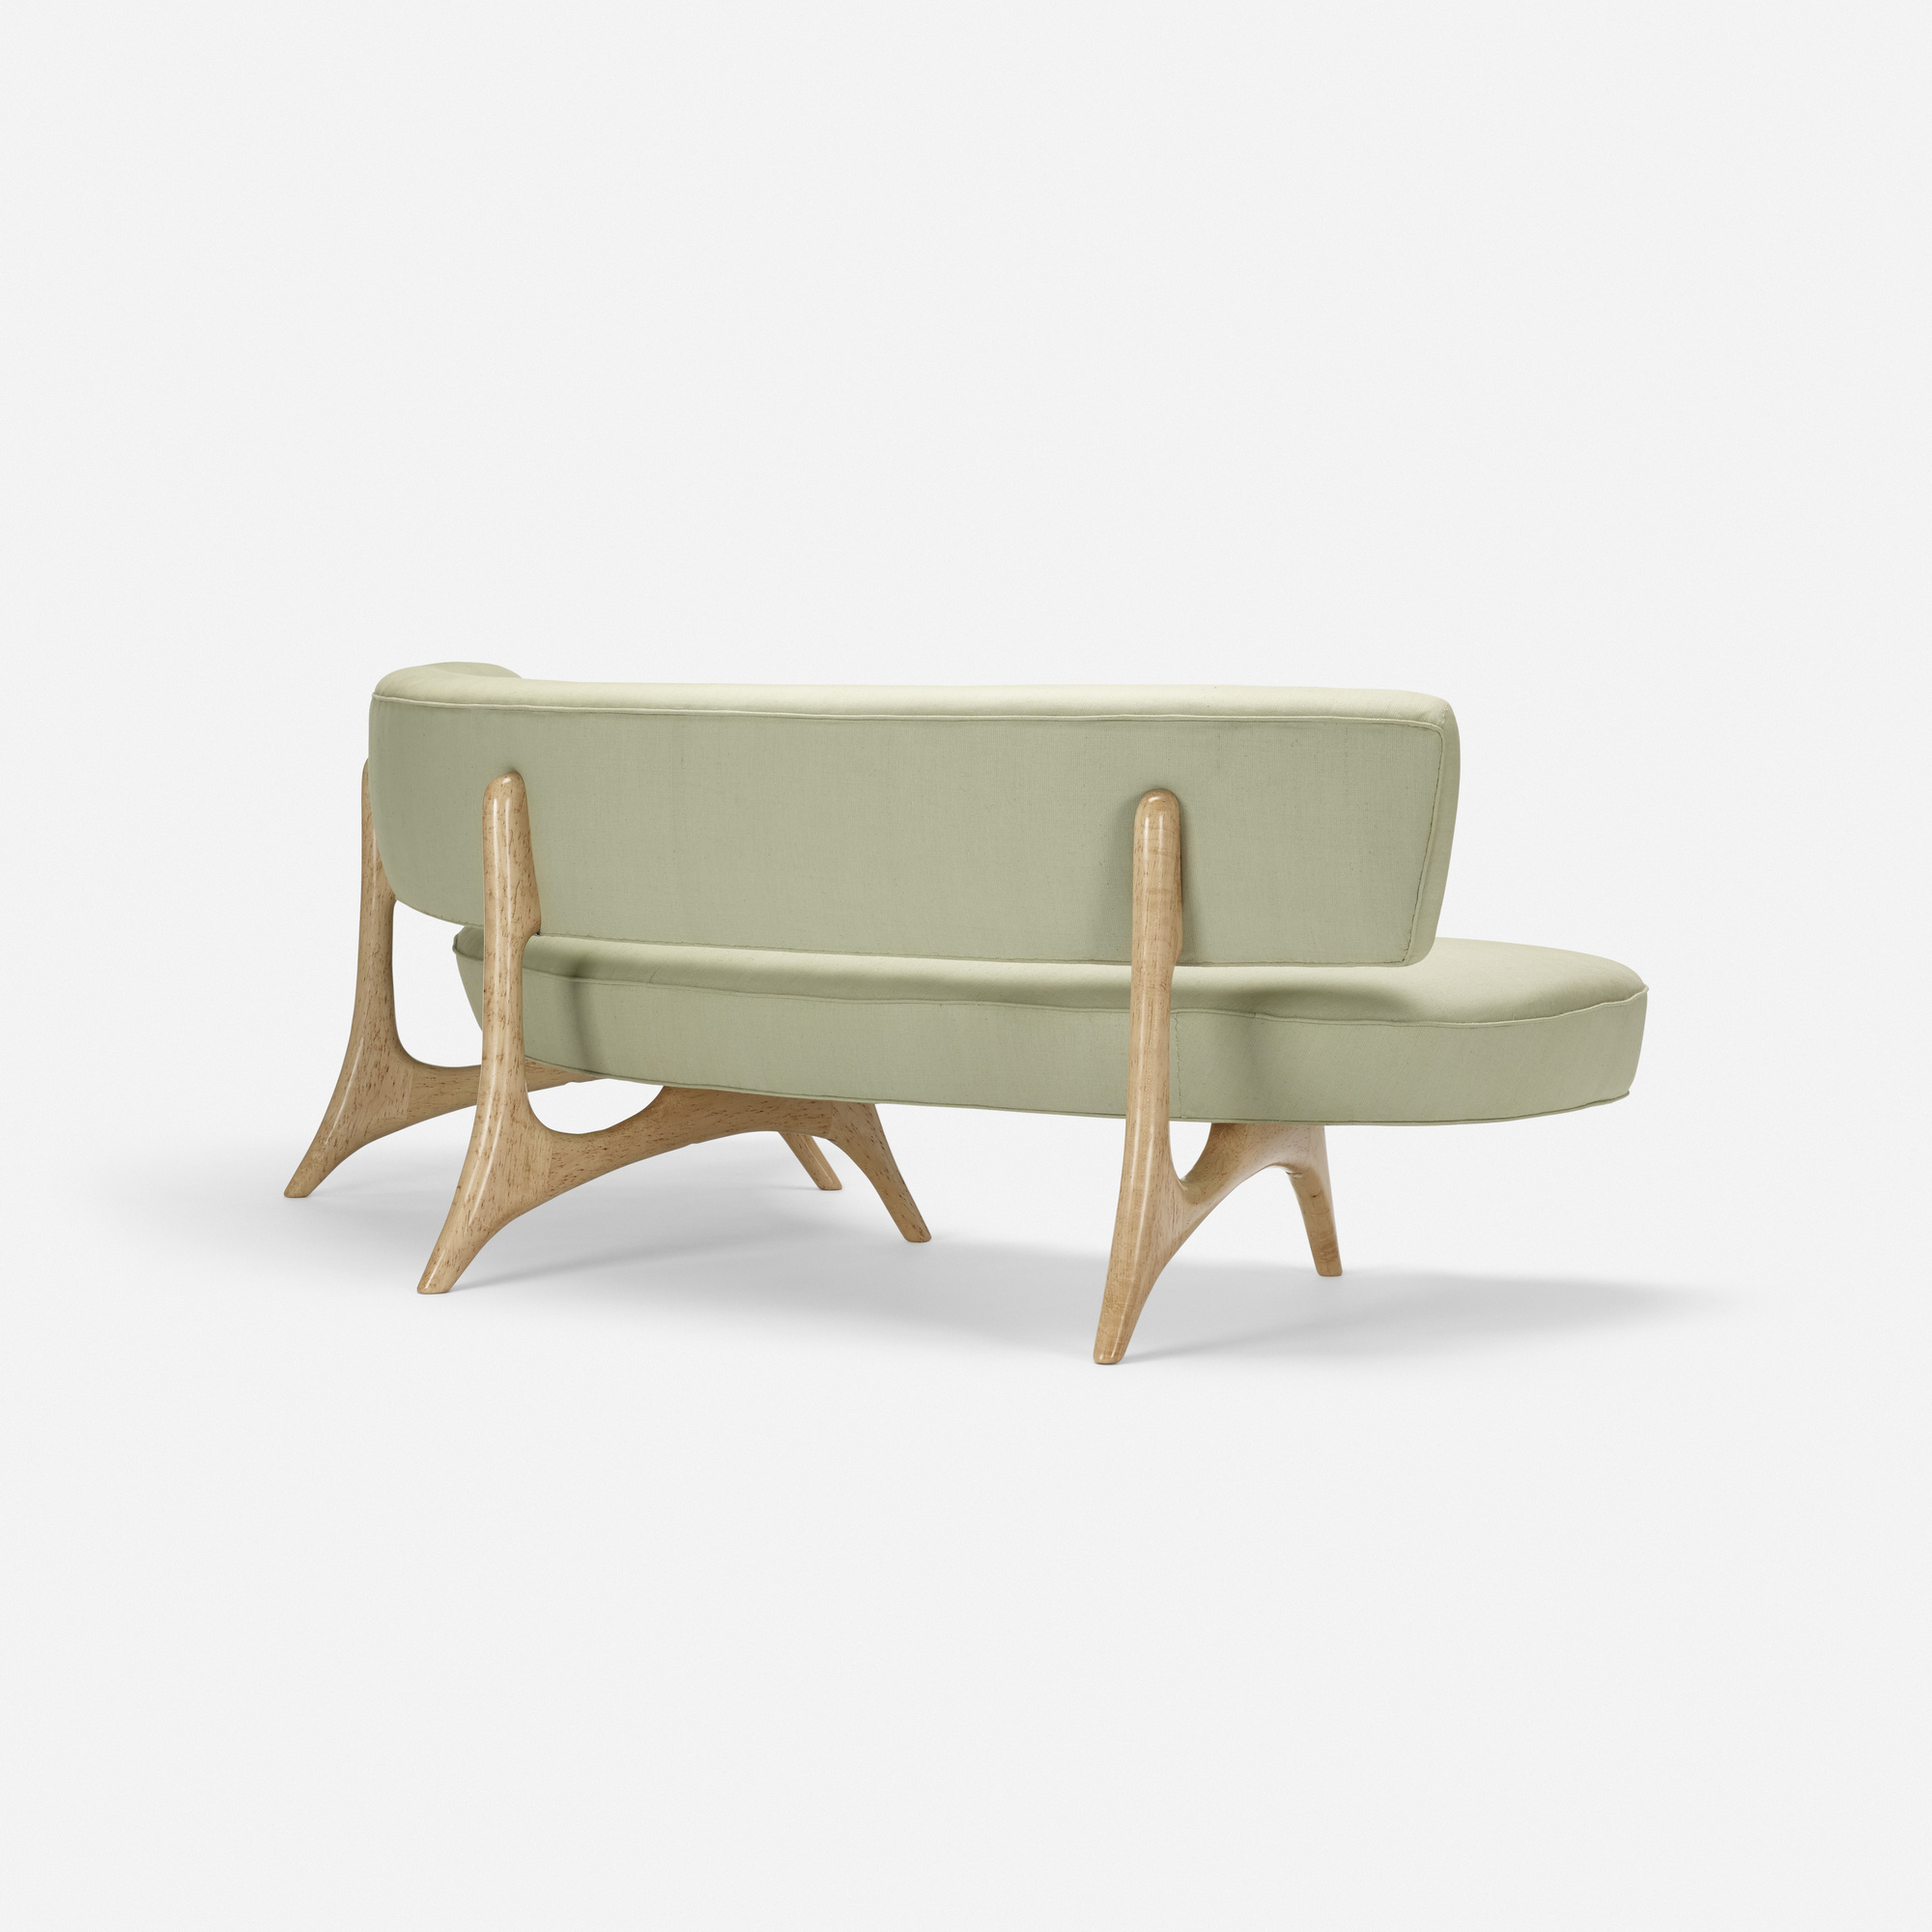 356: Vladimir Kagan / Floating Seat and Back sofa (2 of 3)